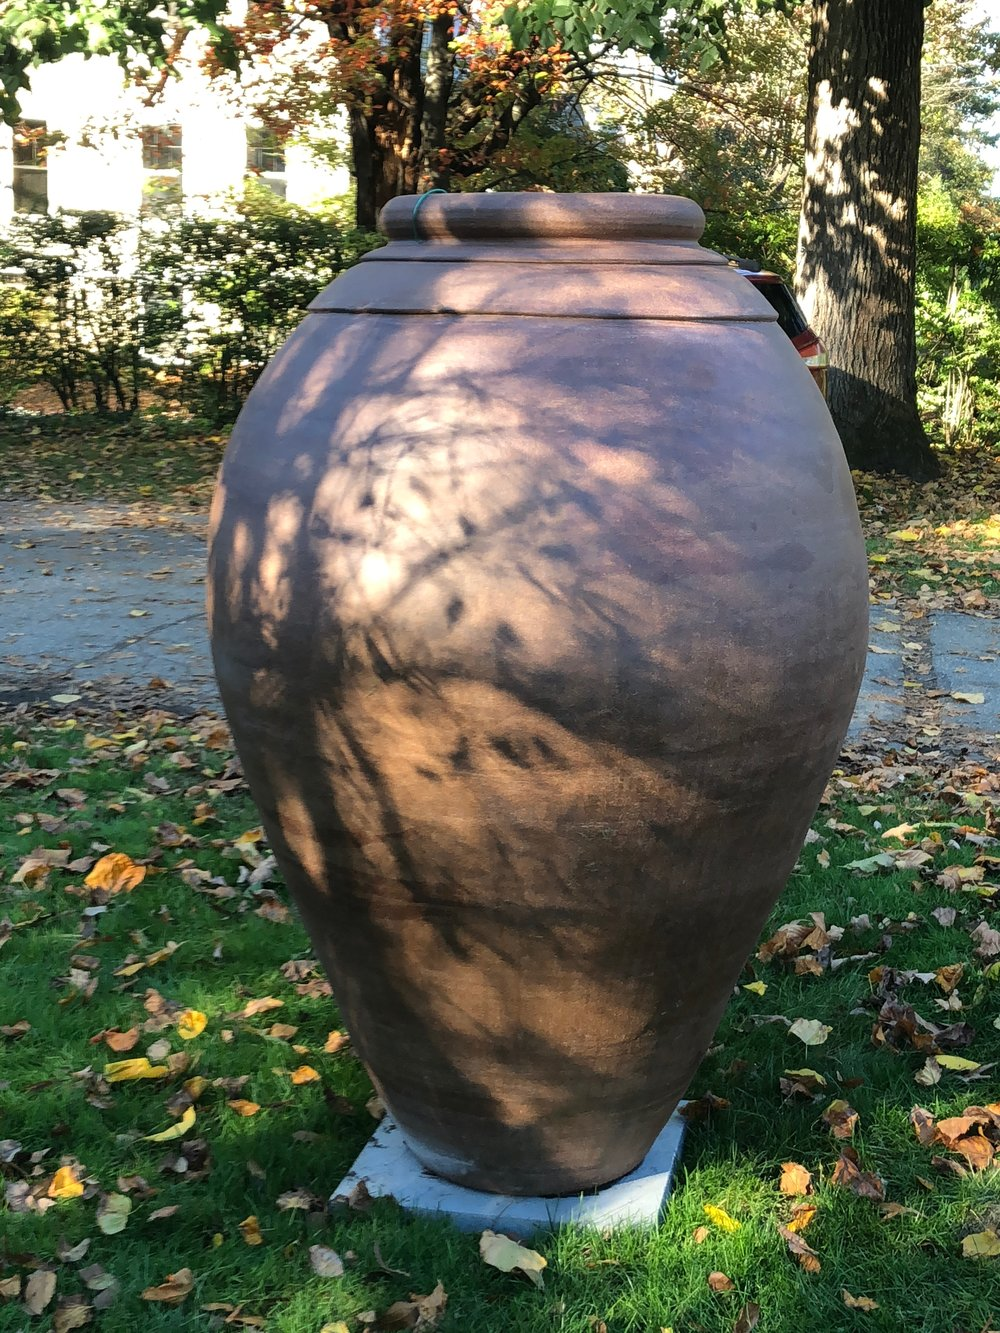 Monumental Vase - Monumental scale (five feet tall!) and bold lines ensure that this piece will assert its presence in any setting. Price reduction (from $12,000) reflects repaired joins and surface blemishes from the firing.60h x 40w $8,000 Available now